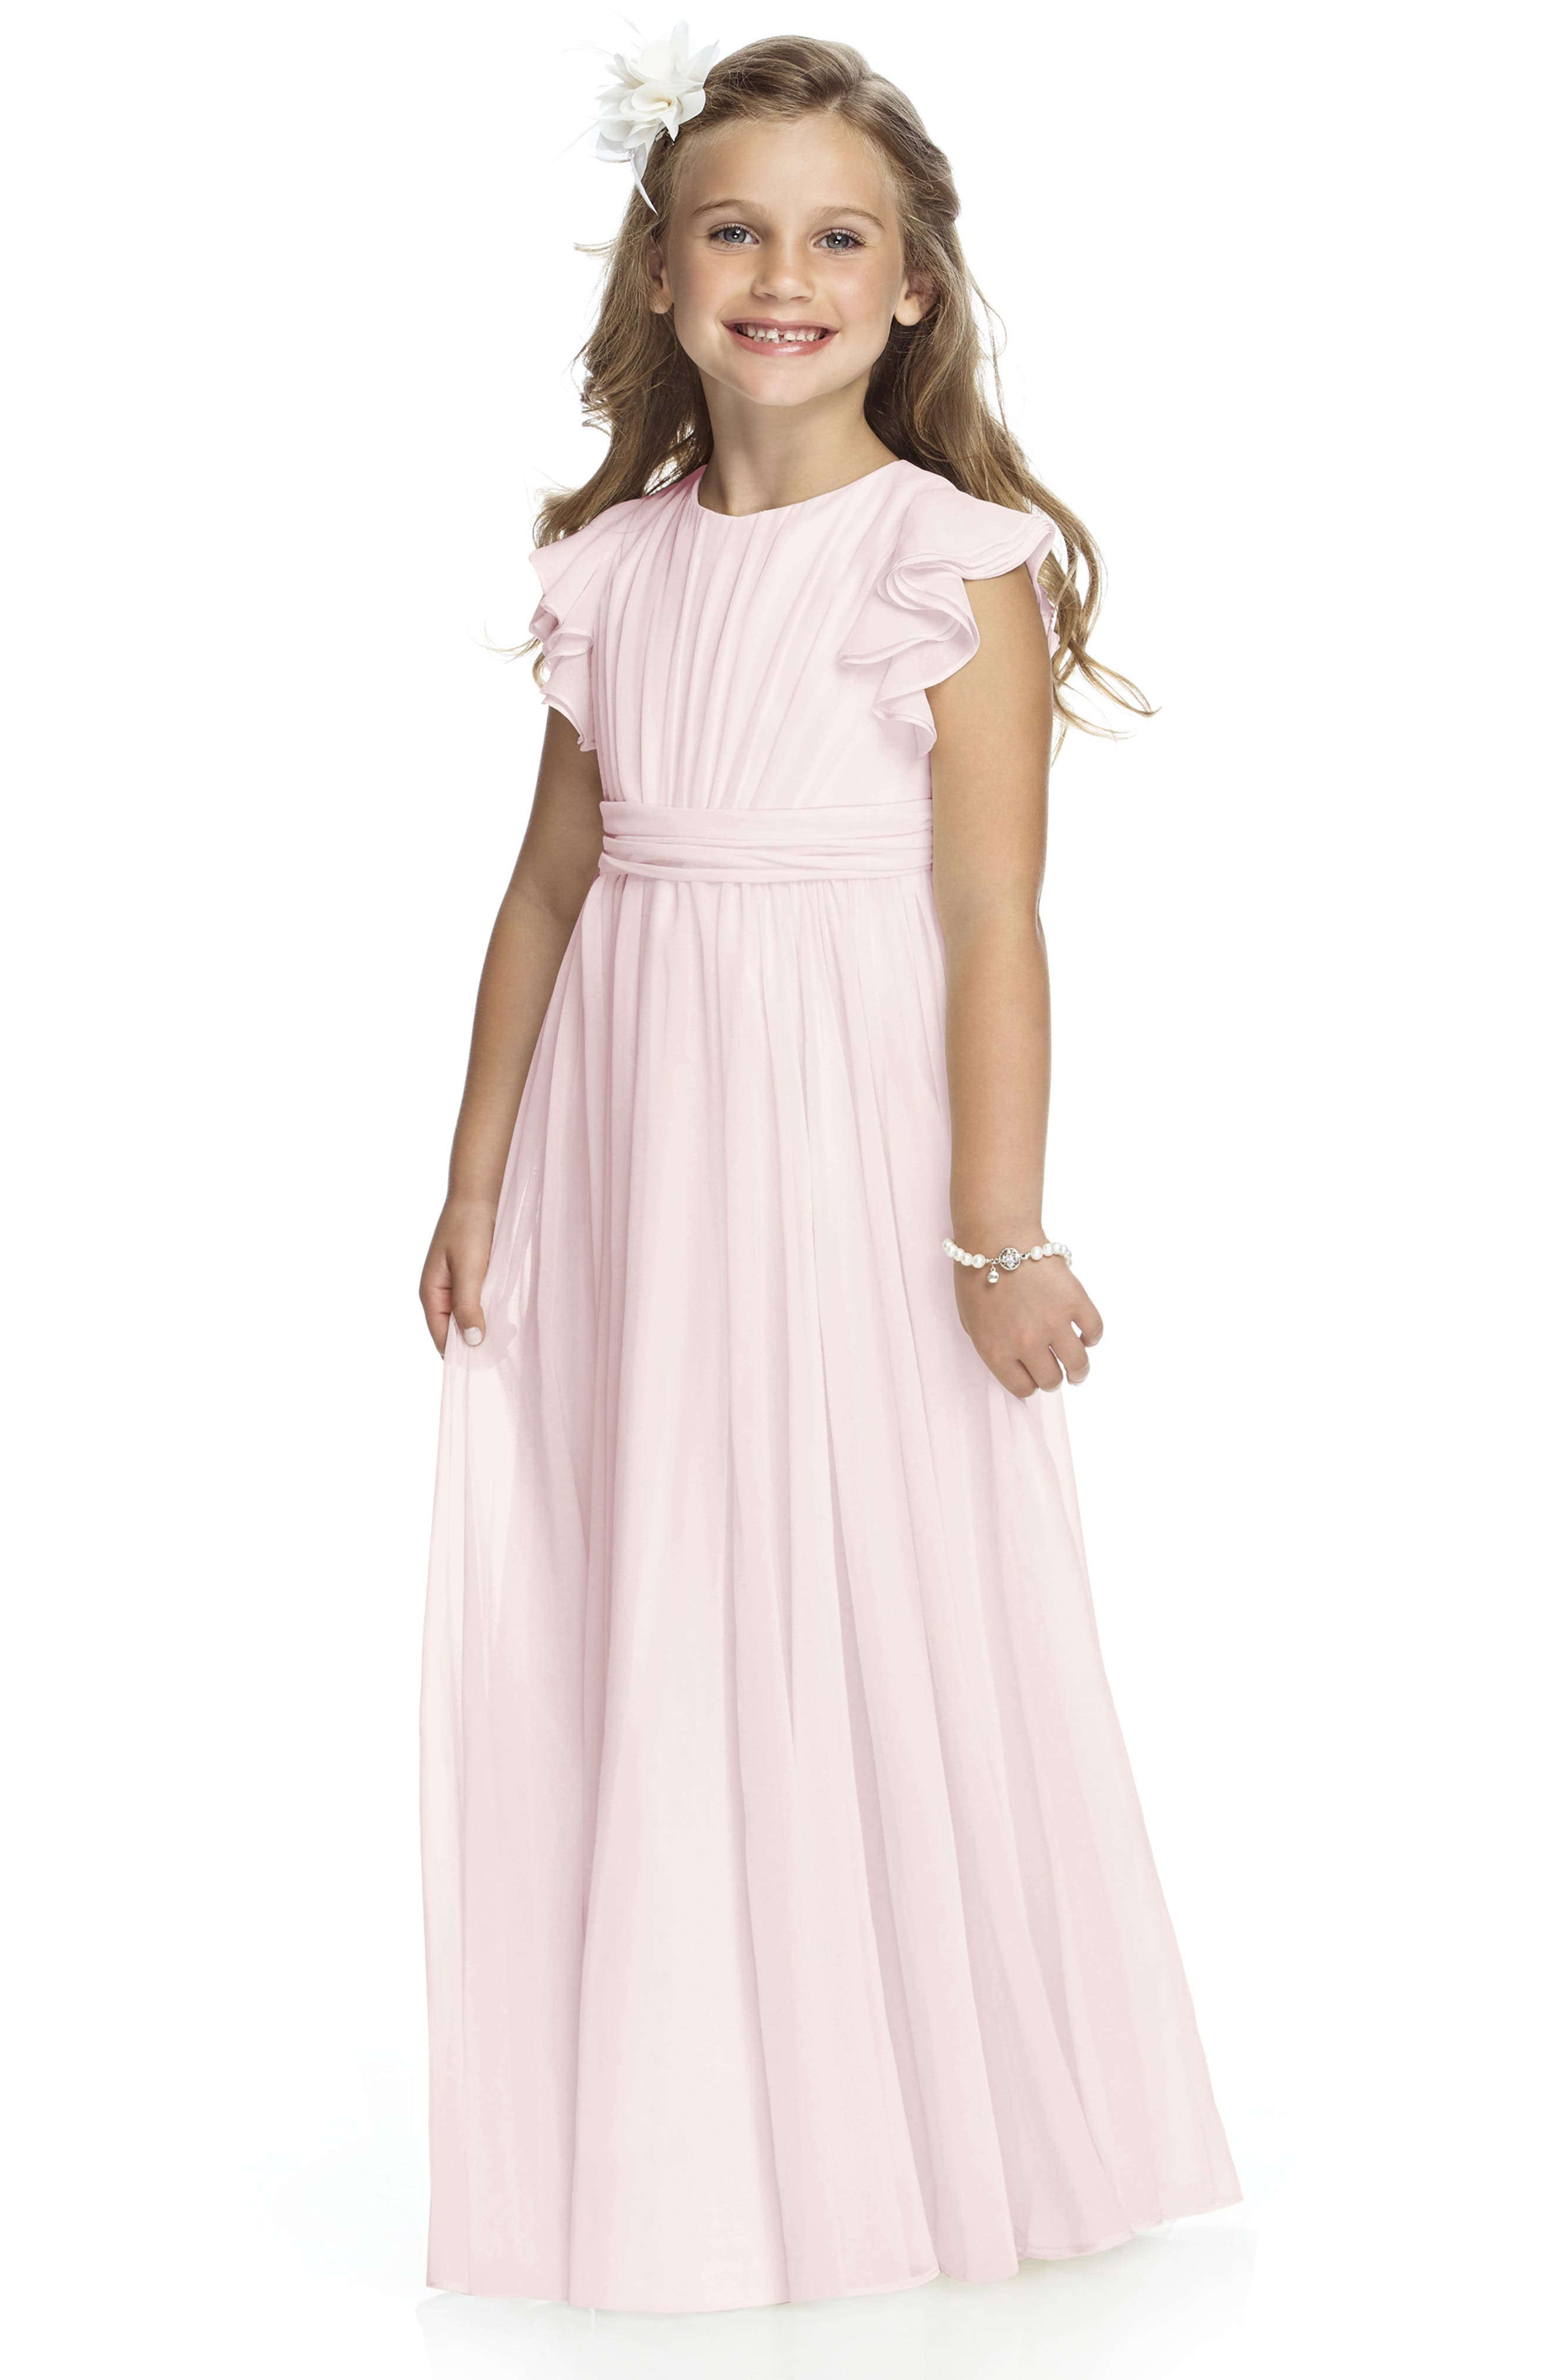 This sweet chiffon flower-girl dress features a shirred bodice framed by dainty flutter sleeves and a sash-wrapped waist above the shirred full-length skirt. Style Name: Dessy Collection Long Chiffon Flower Girl Dress (Toddler Girl, Little Girl & Big Girl). Style Number: 5819803. Available in stores.